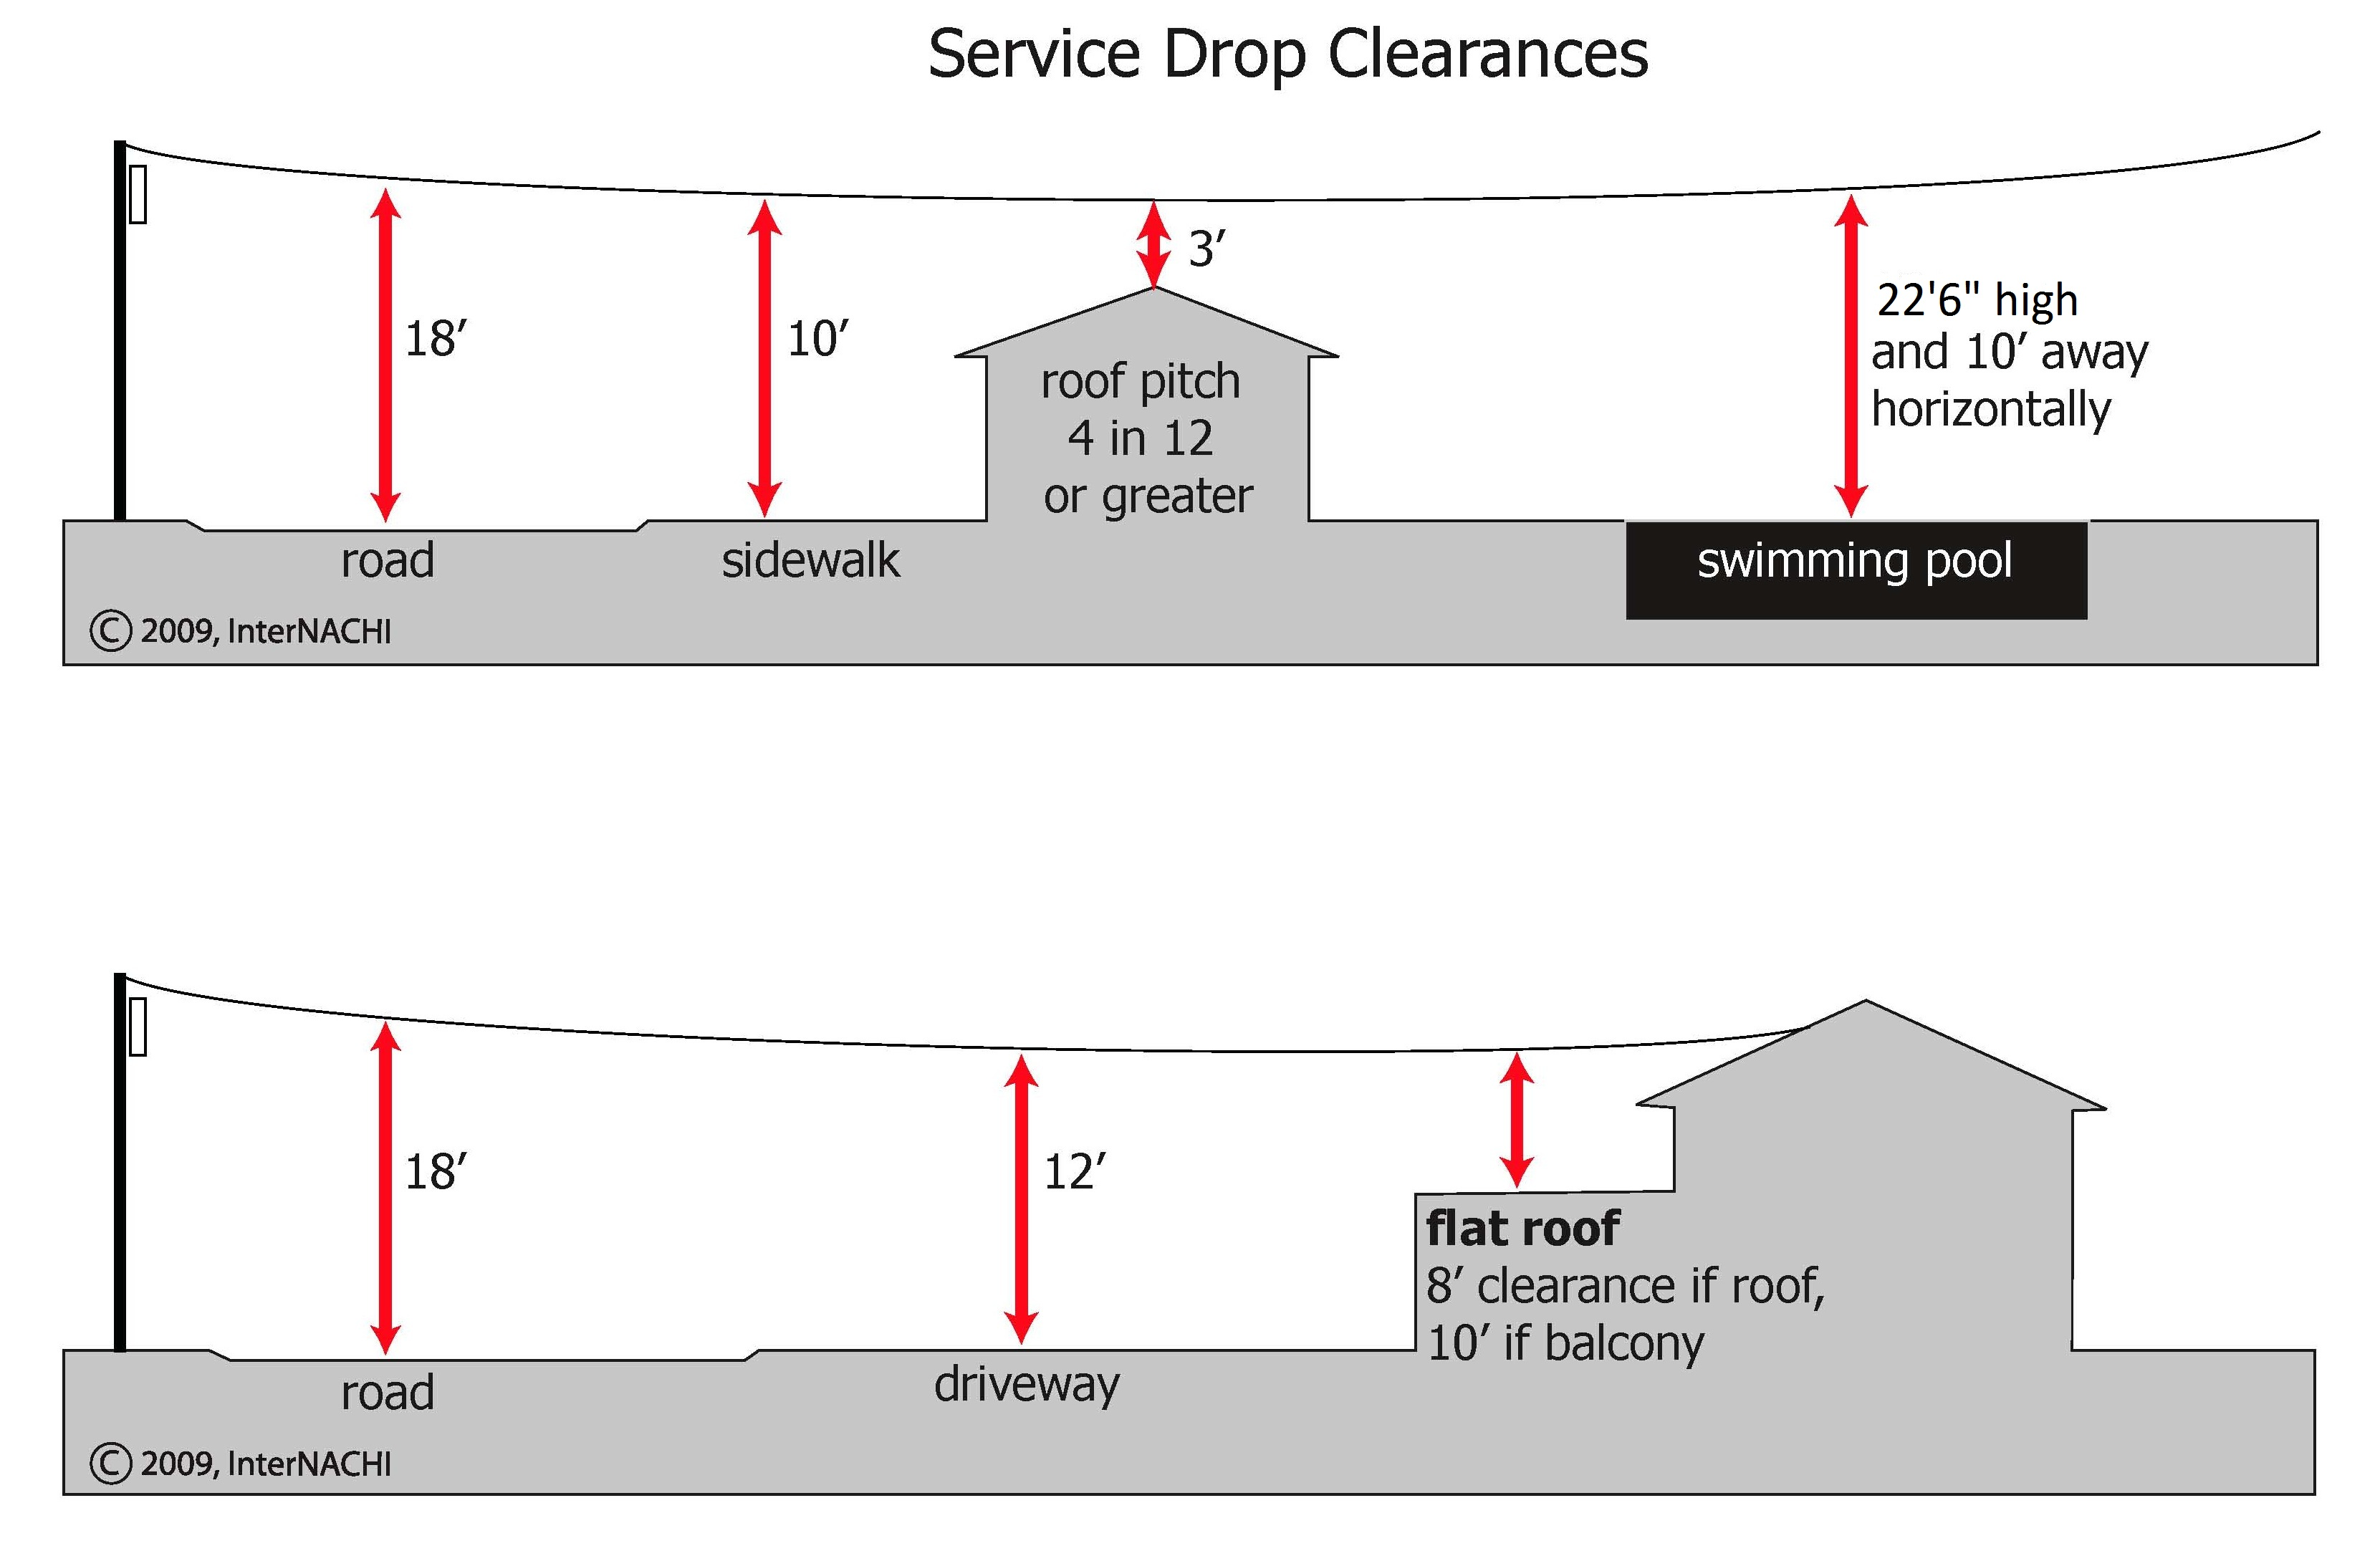 Service drop clearances.